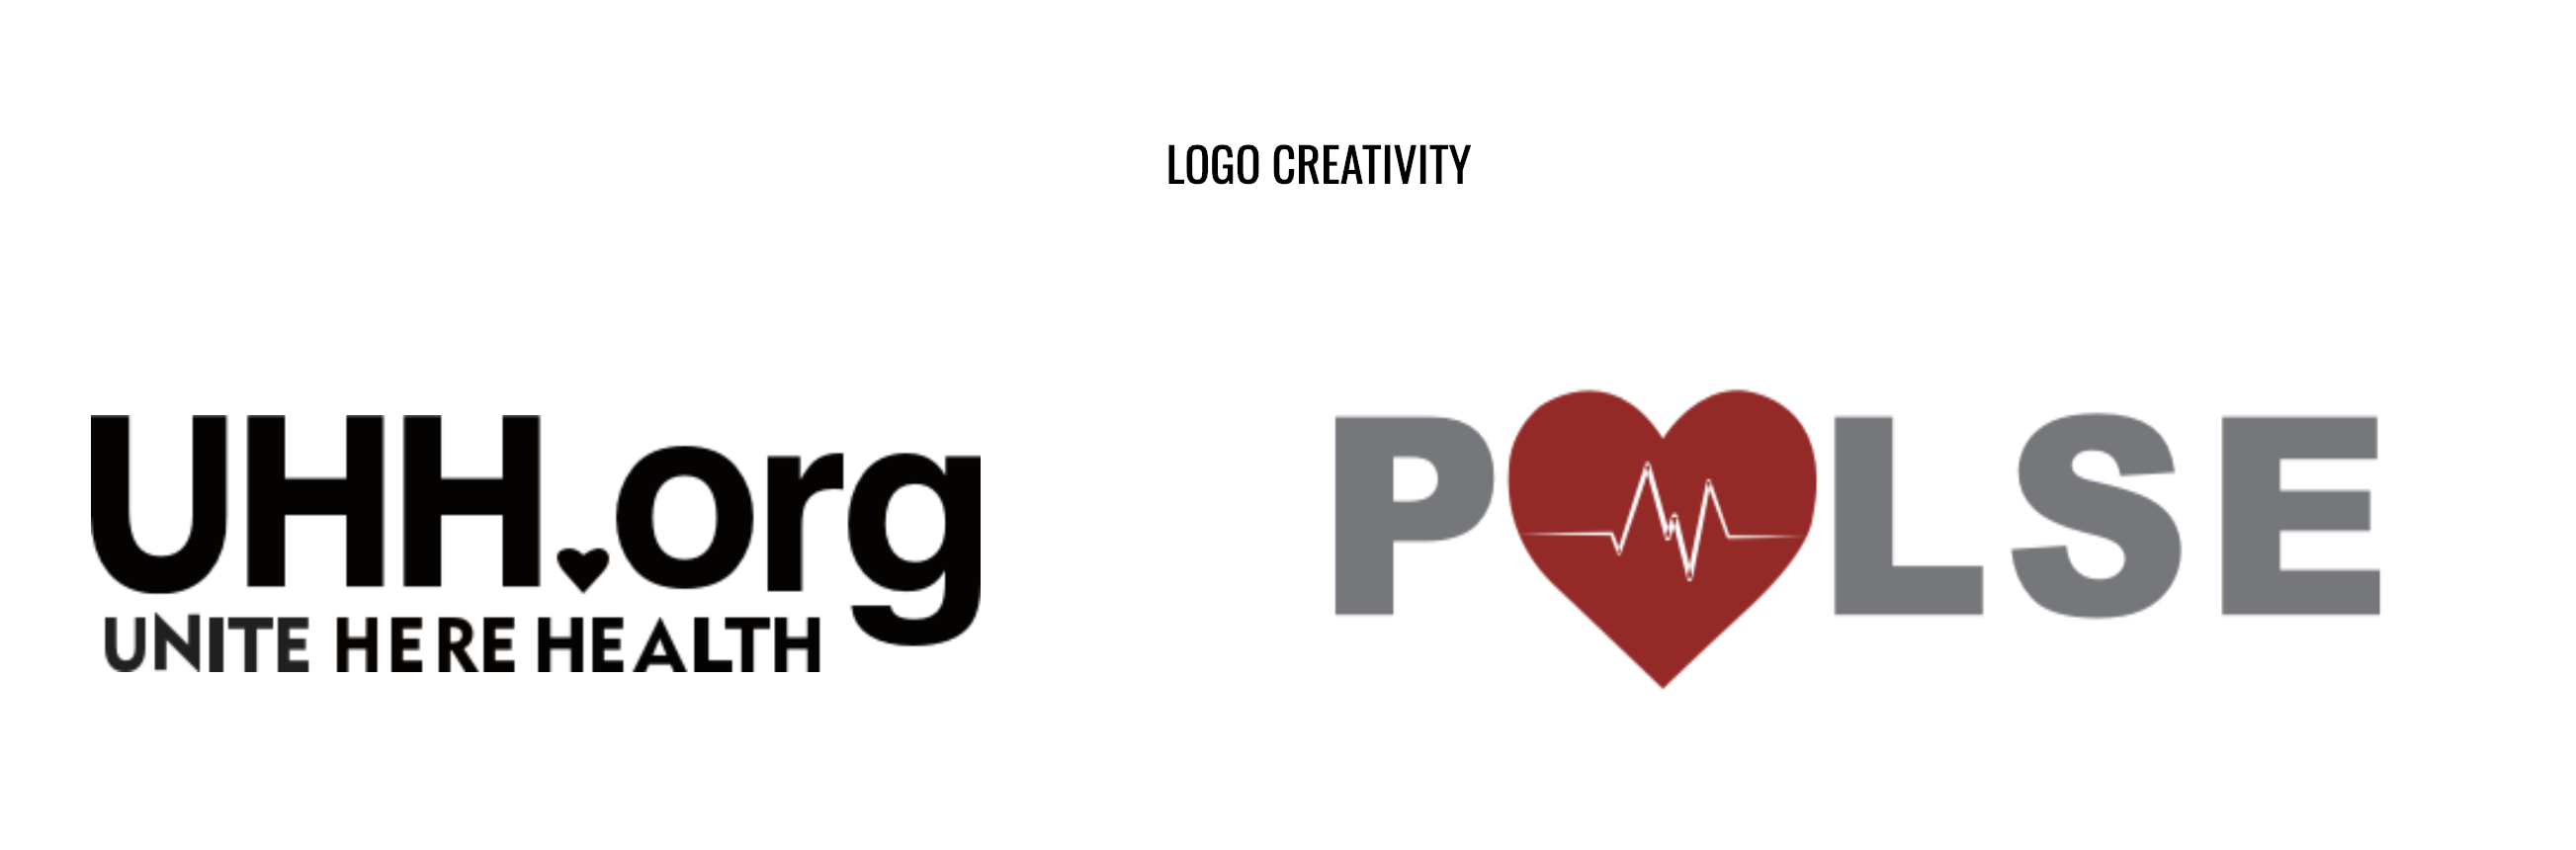 logo creativity UHH